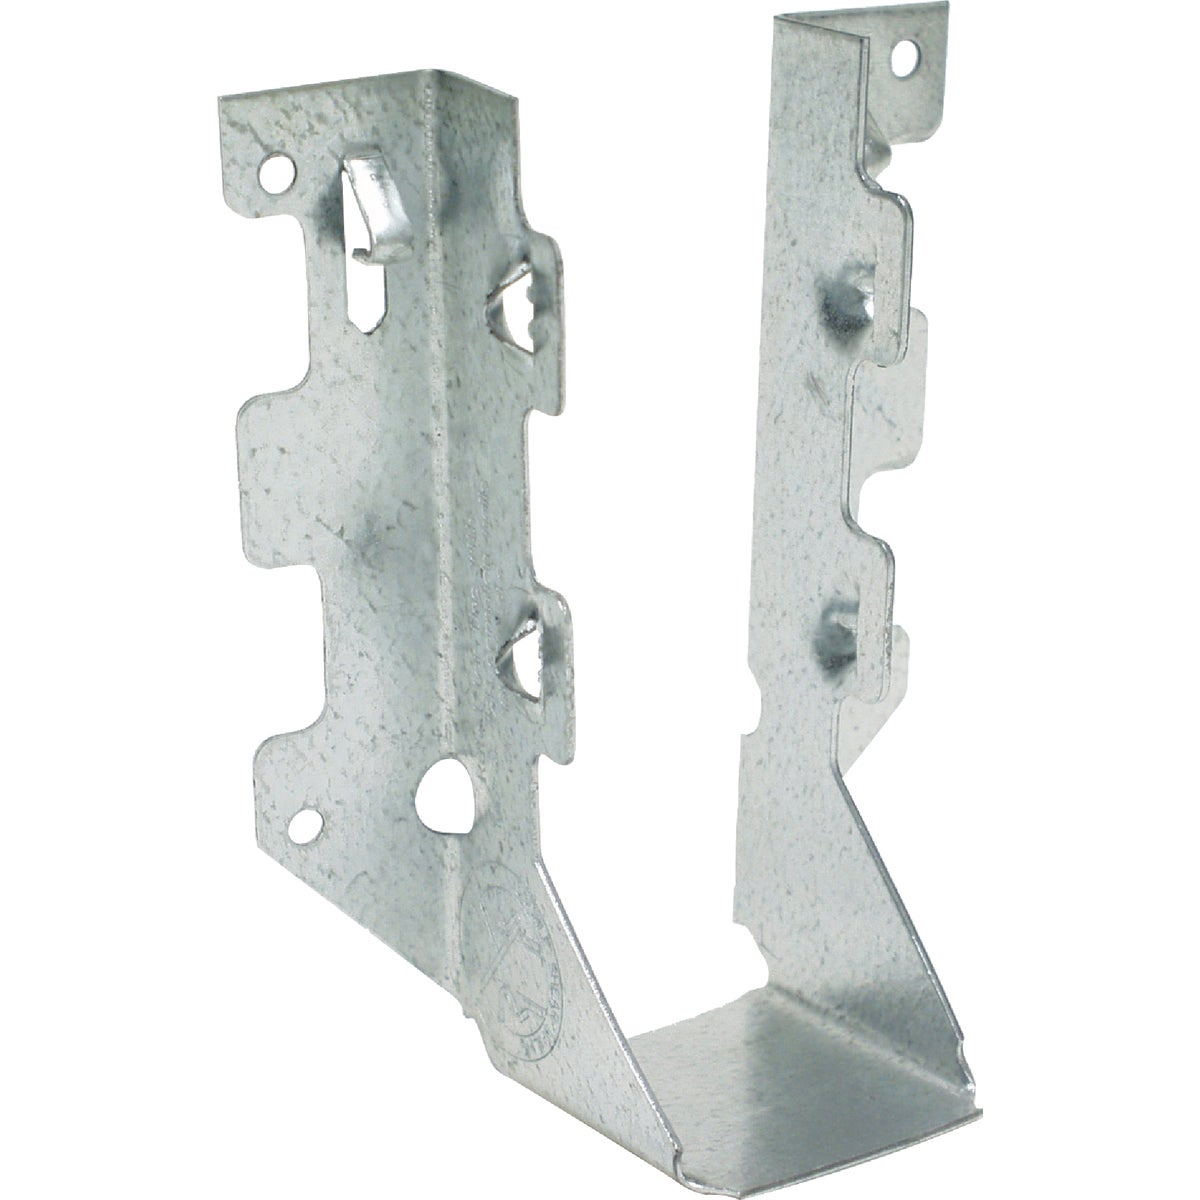 2X6 JOIST HANGER - LUS26 by Simpson Strong Tie